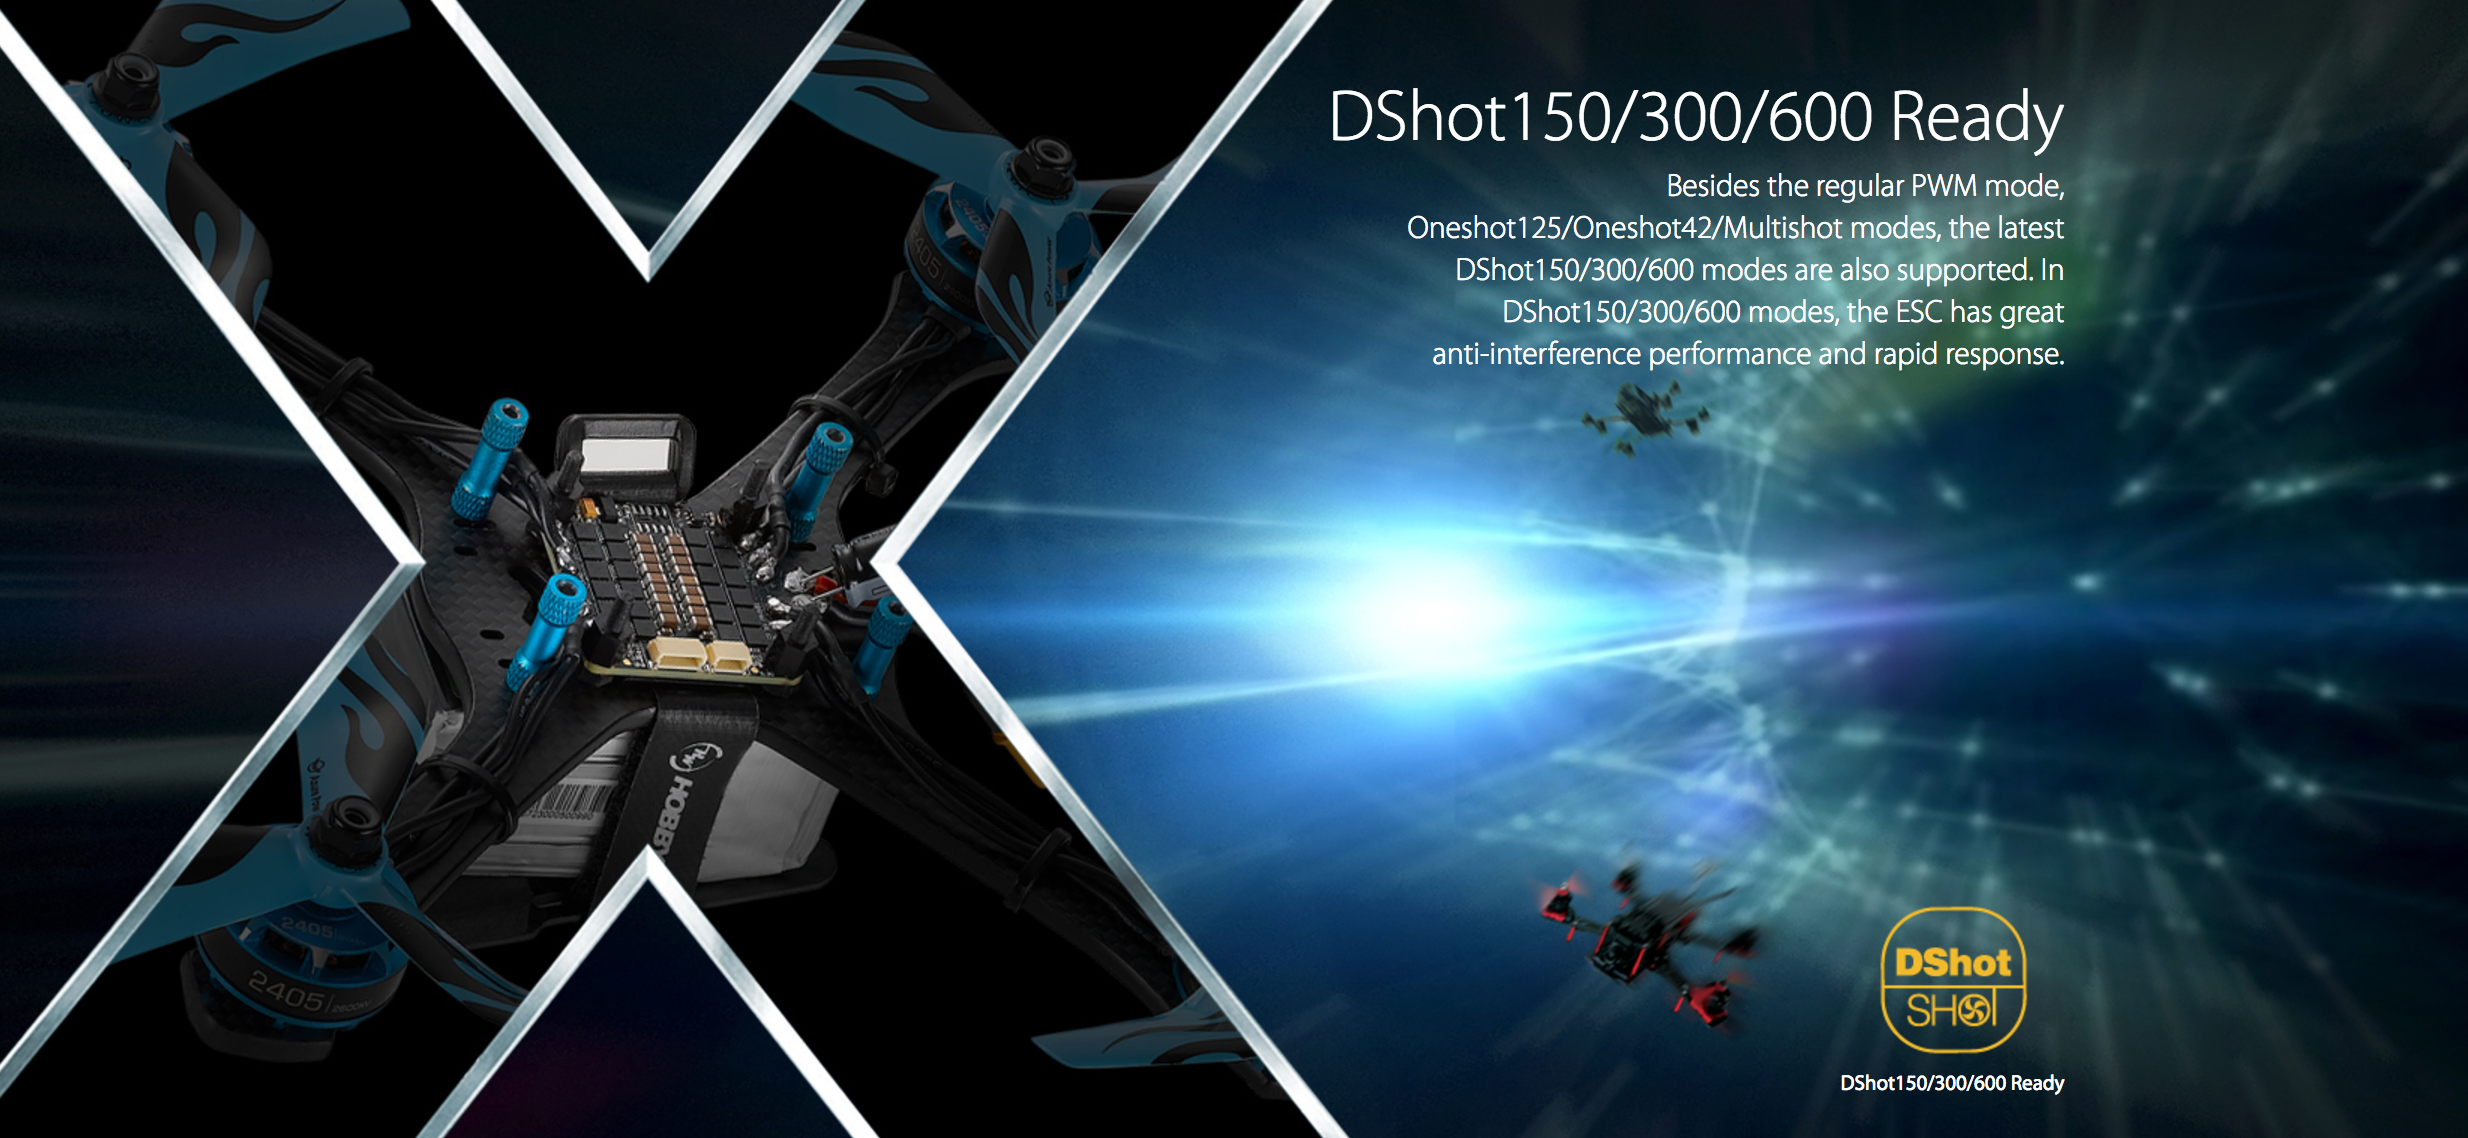 DShot150/300/600 Ready. Besides the regular PWM mode, Oneshot125/Oneshot42/Multishot modes, the latest DShot150/300/600 modes are also supported. In DShot150/300/600 modes, the ESC has great anti-interference performance and rapid response.